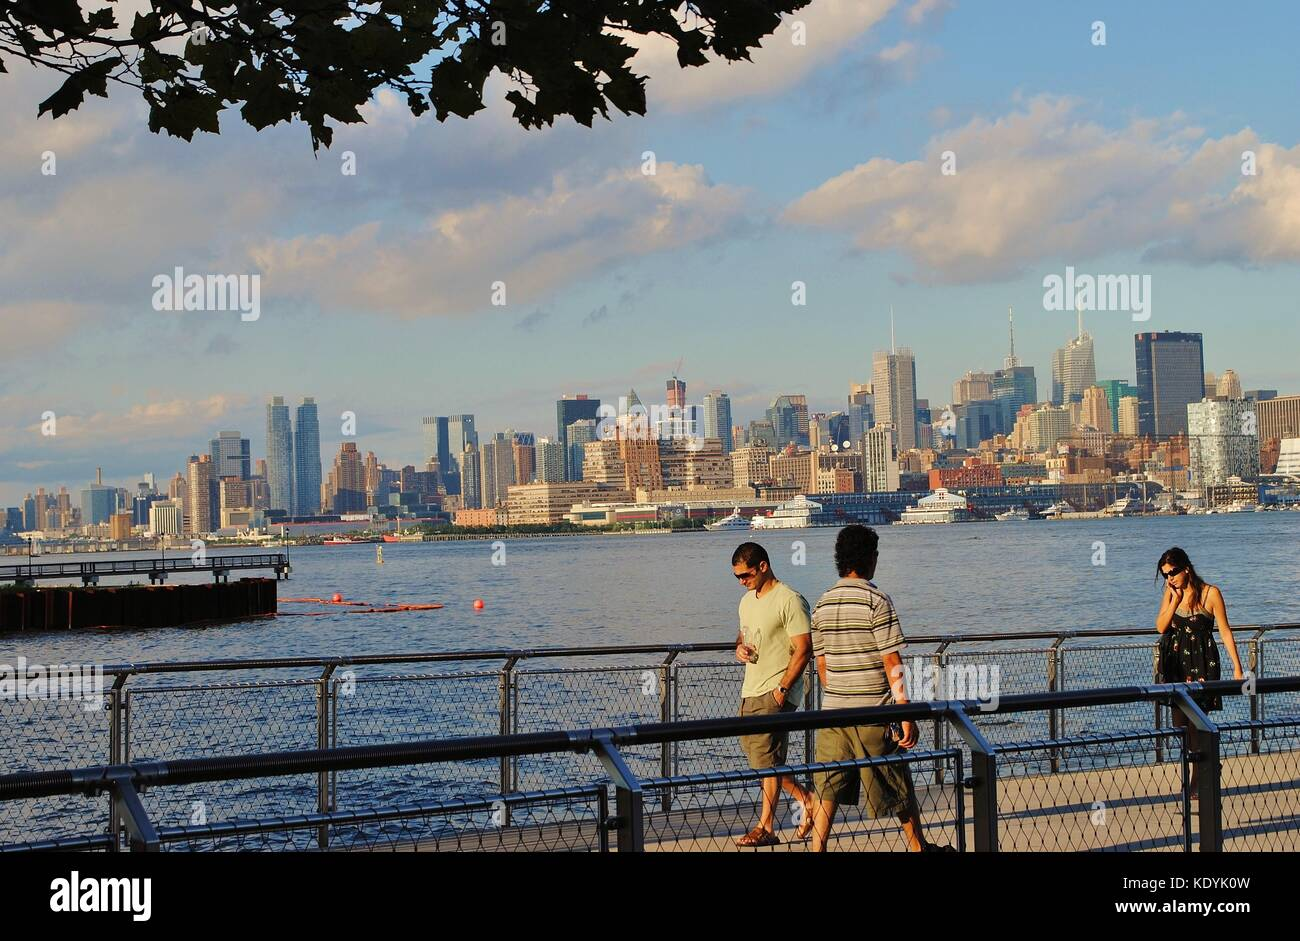 view-of-new-york-city-from-hoboken-nj-ac